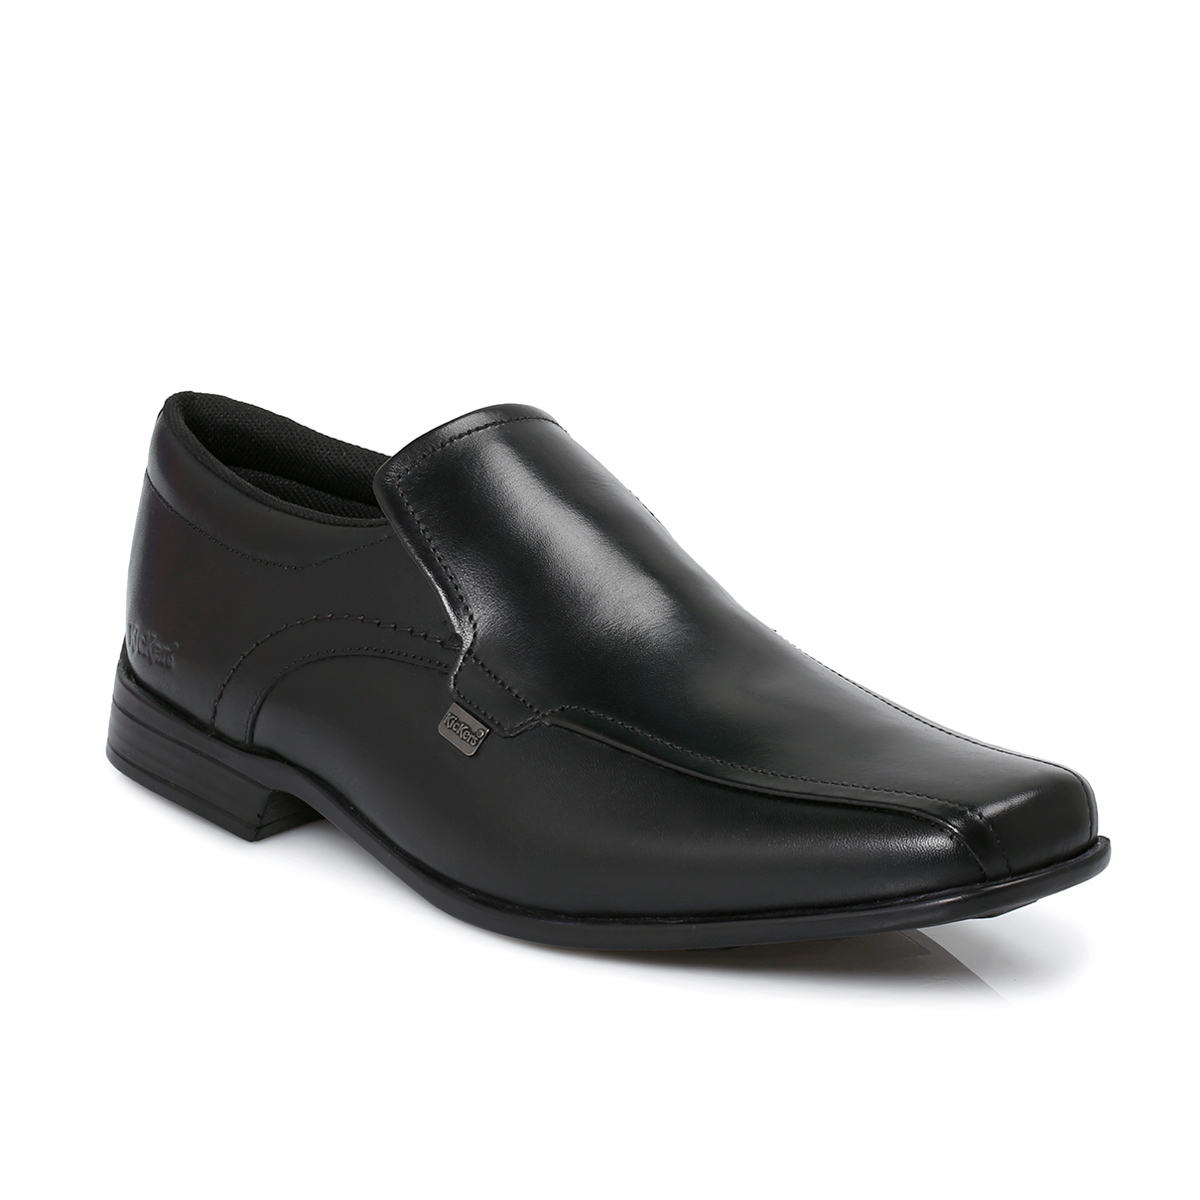 kickers ferock black slip on shoes mens boys school office